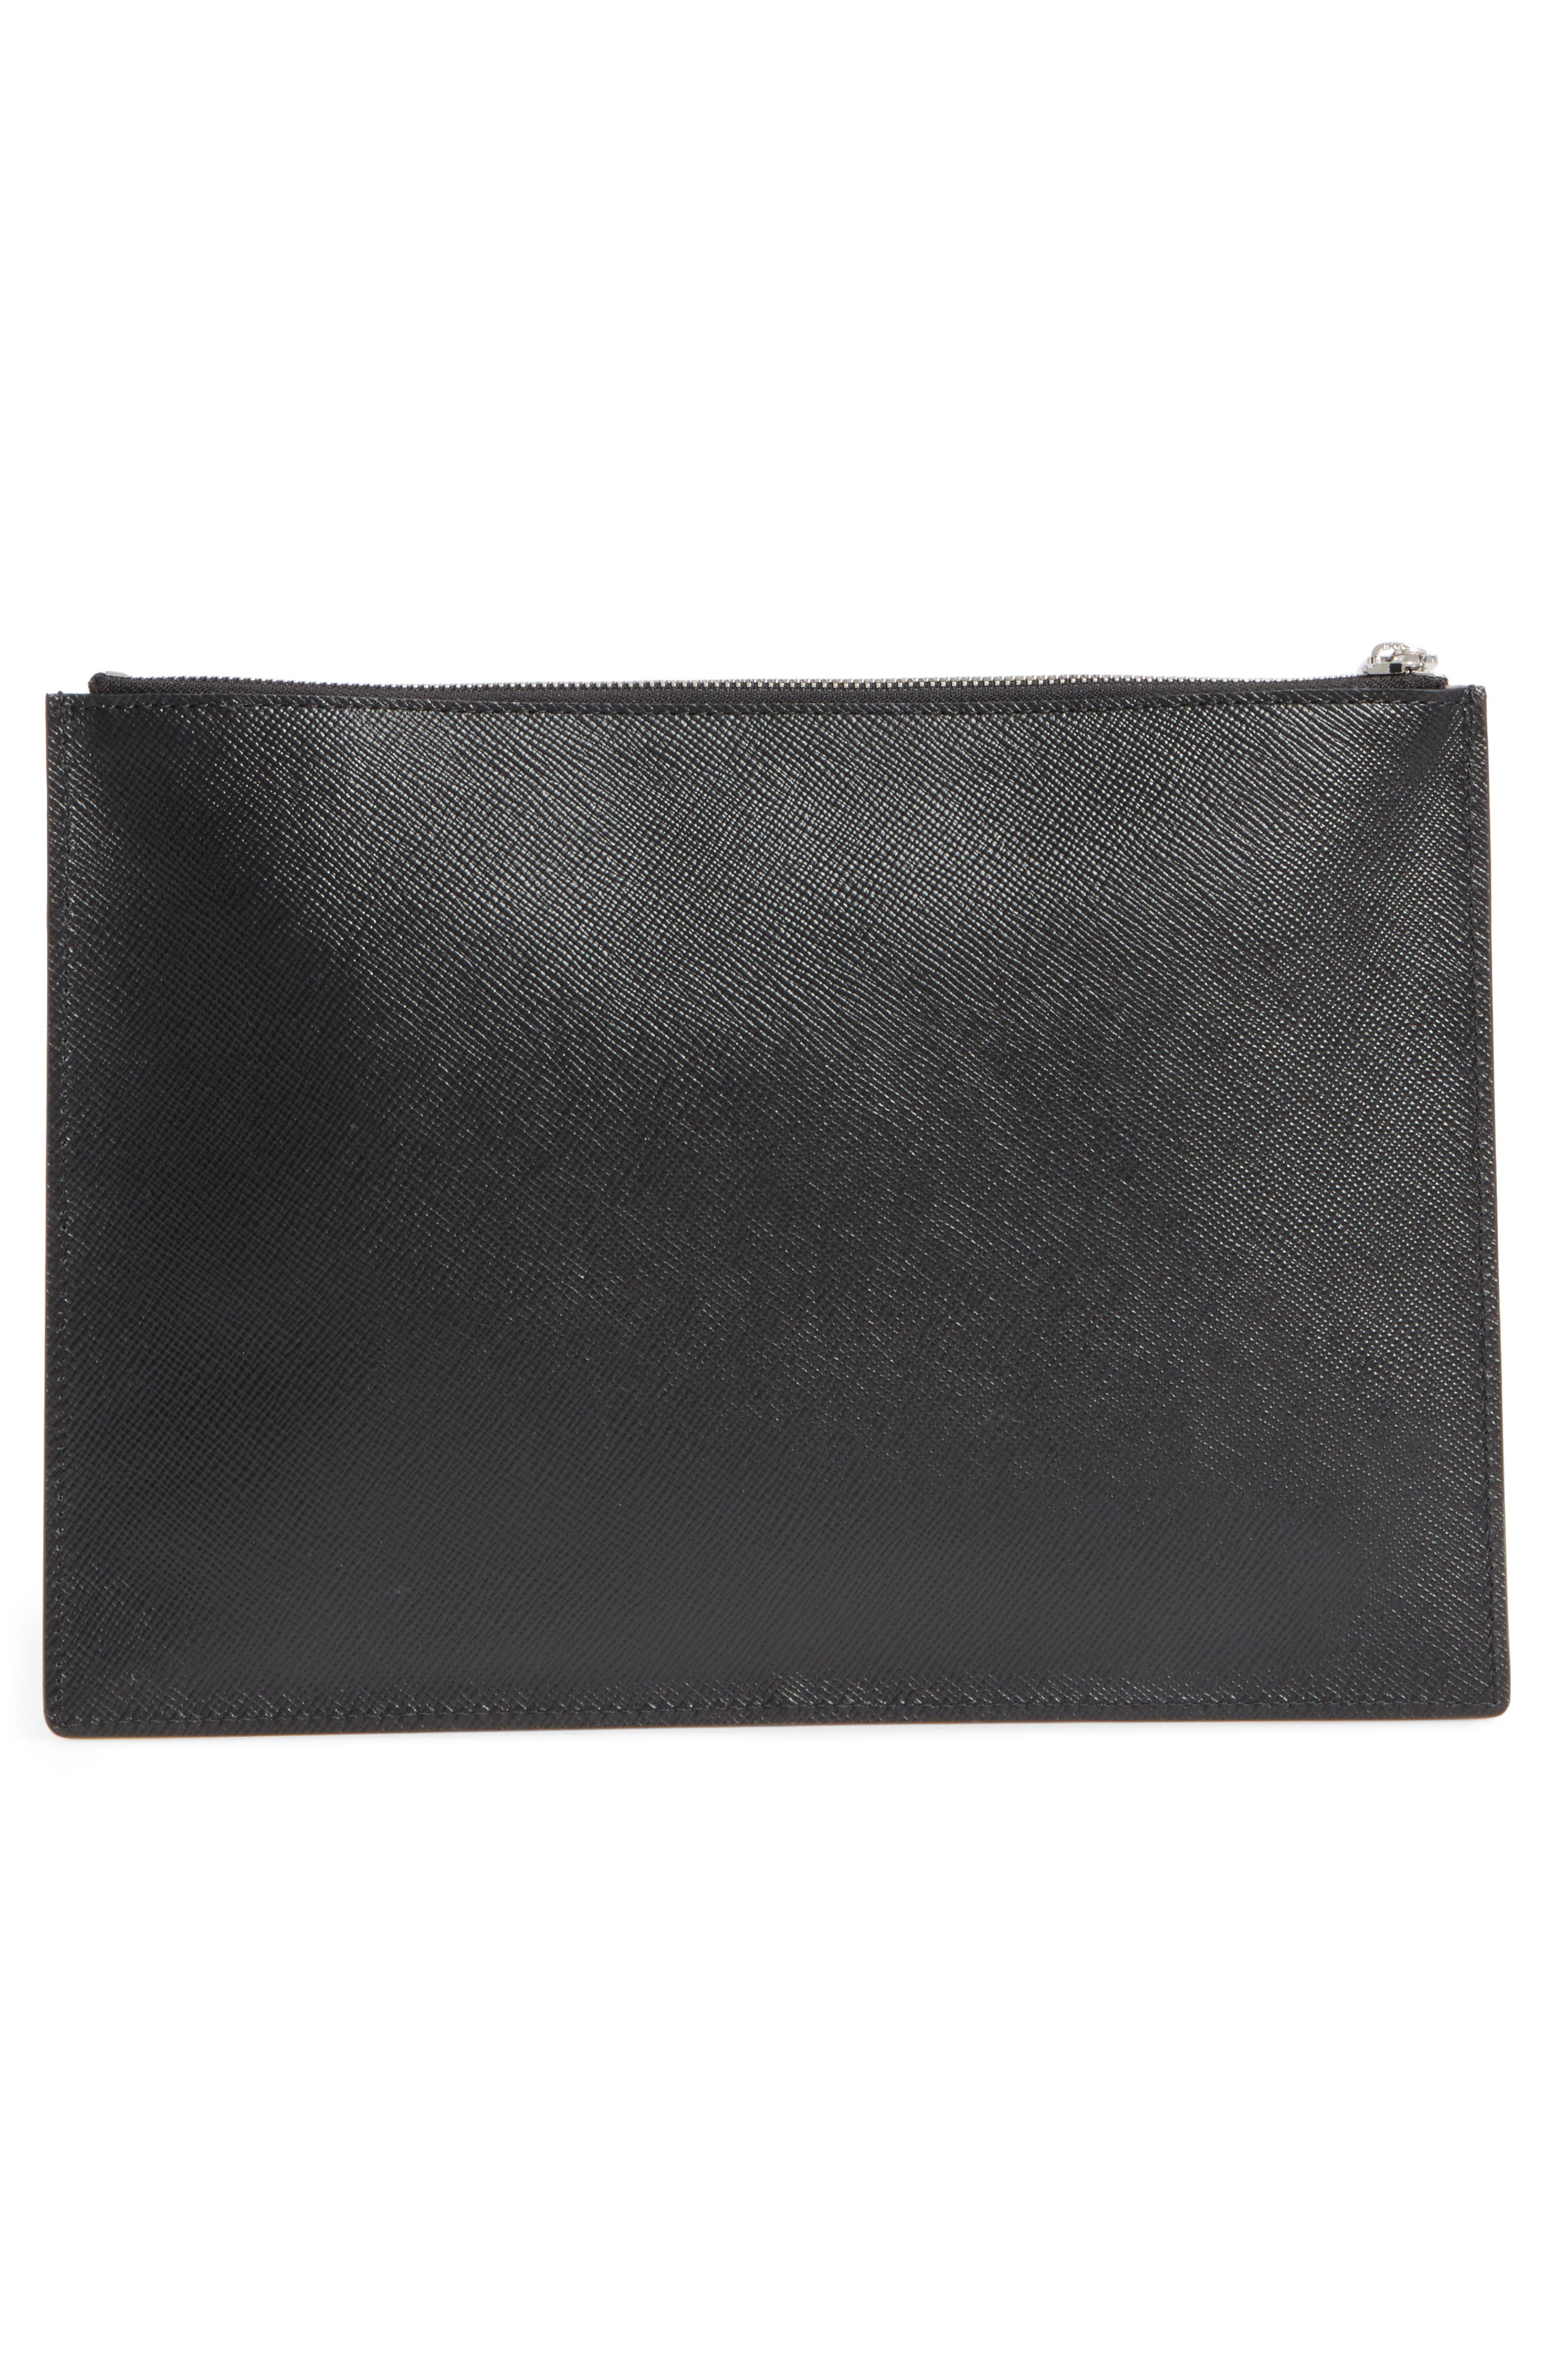 Evolution Leather Clutch,                             Alternate thumbnail 3, color,                             001